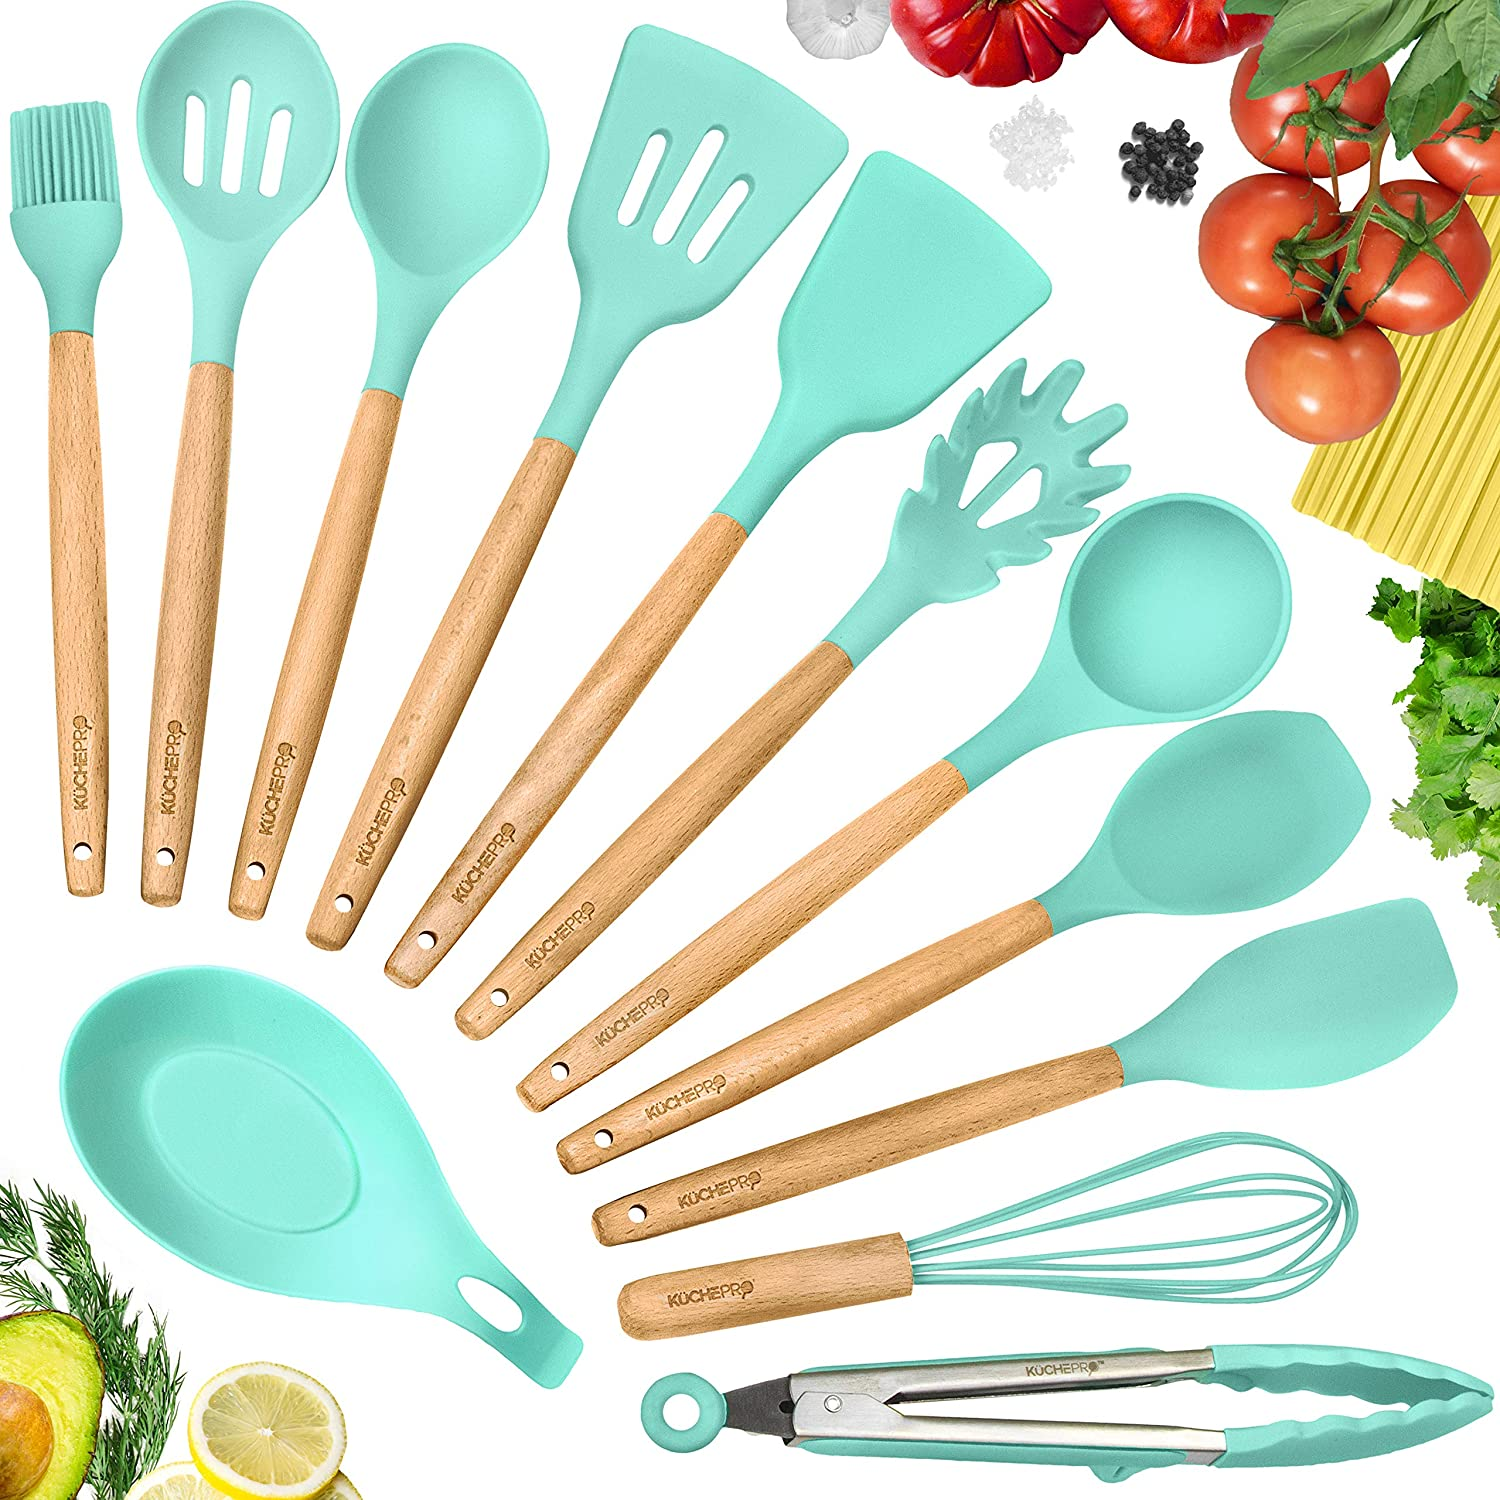 KuchePro 12-Piece Silicone Kitchen Utensil Set